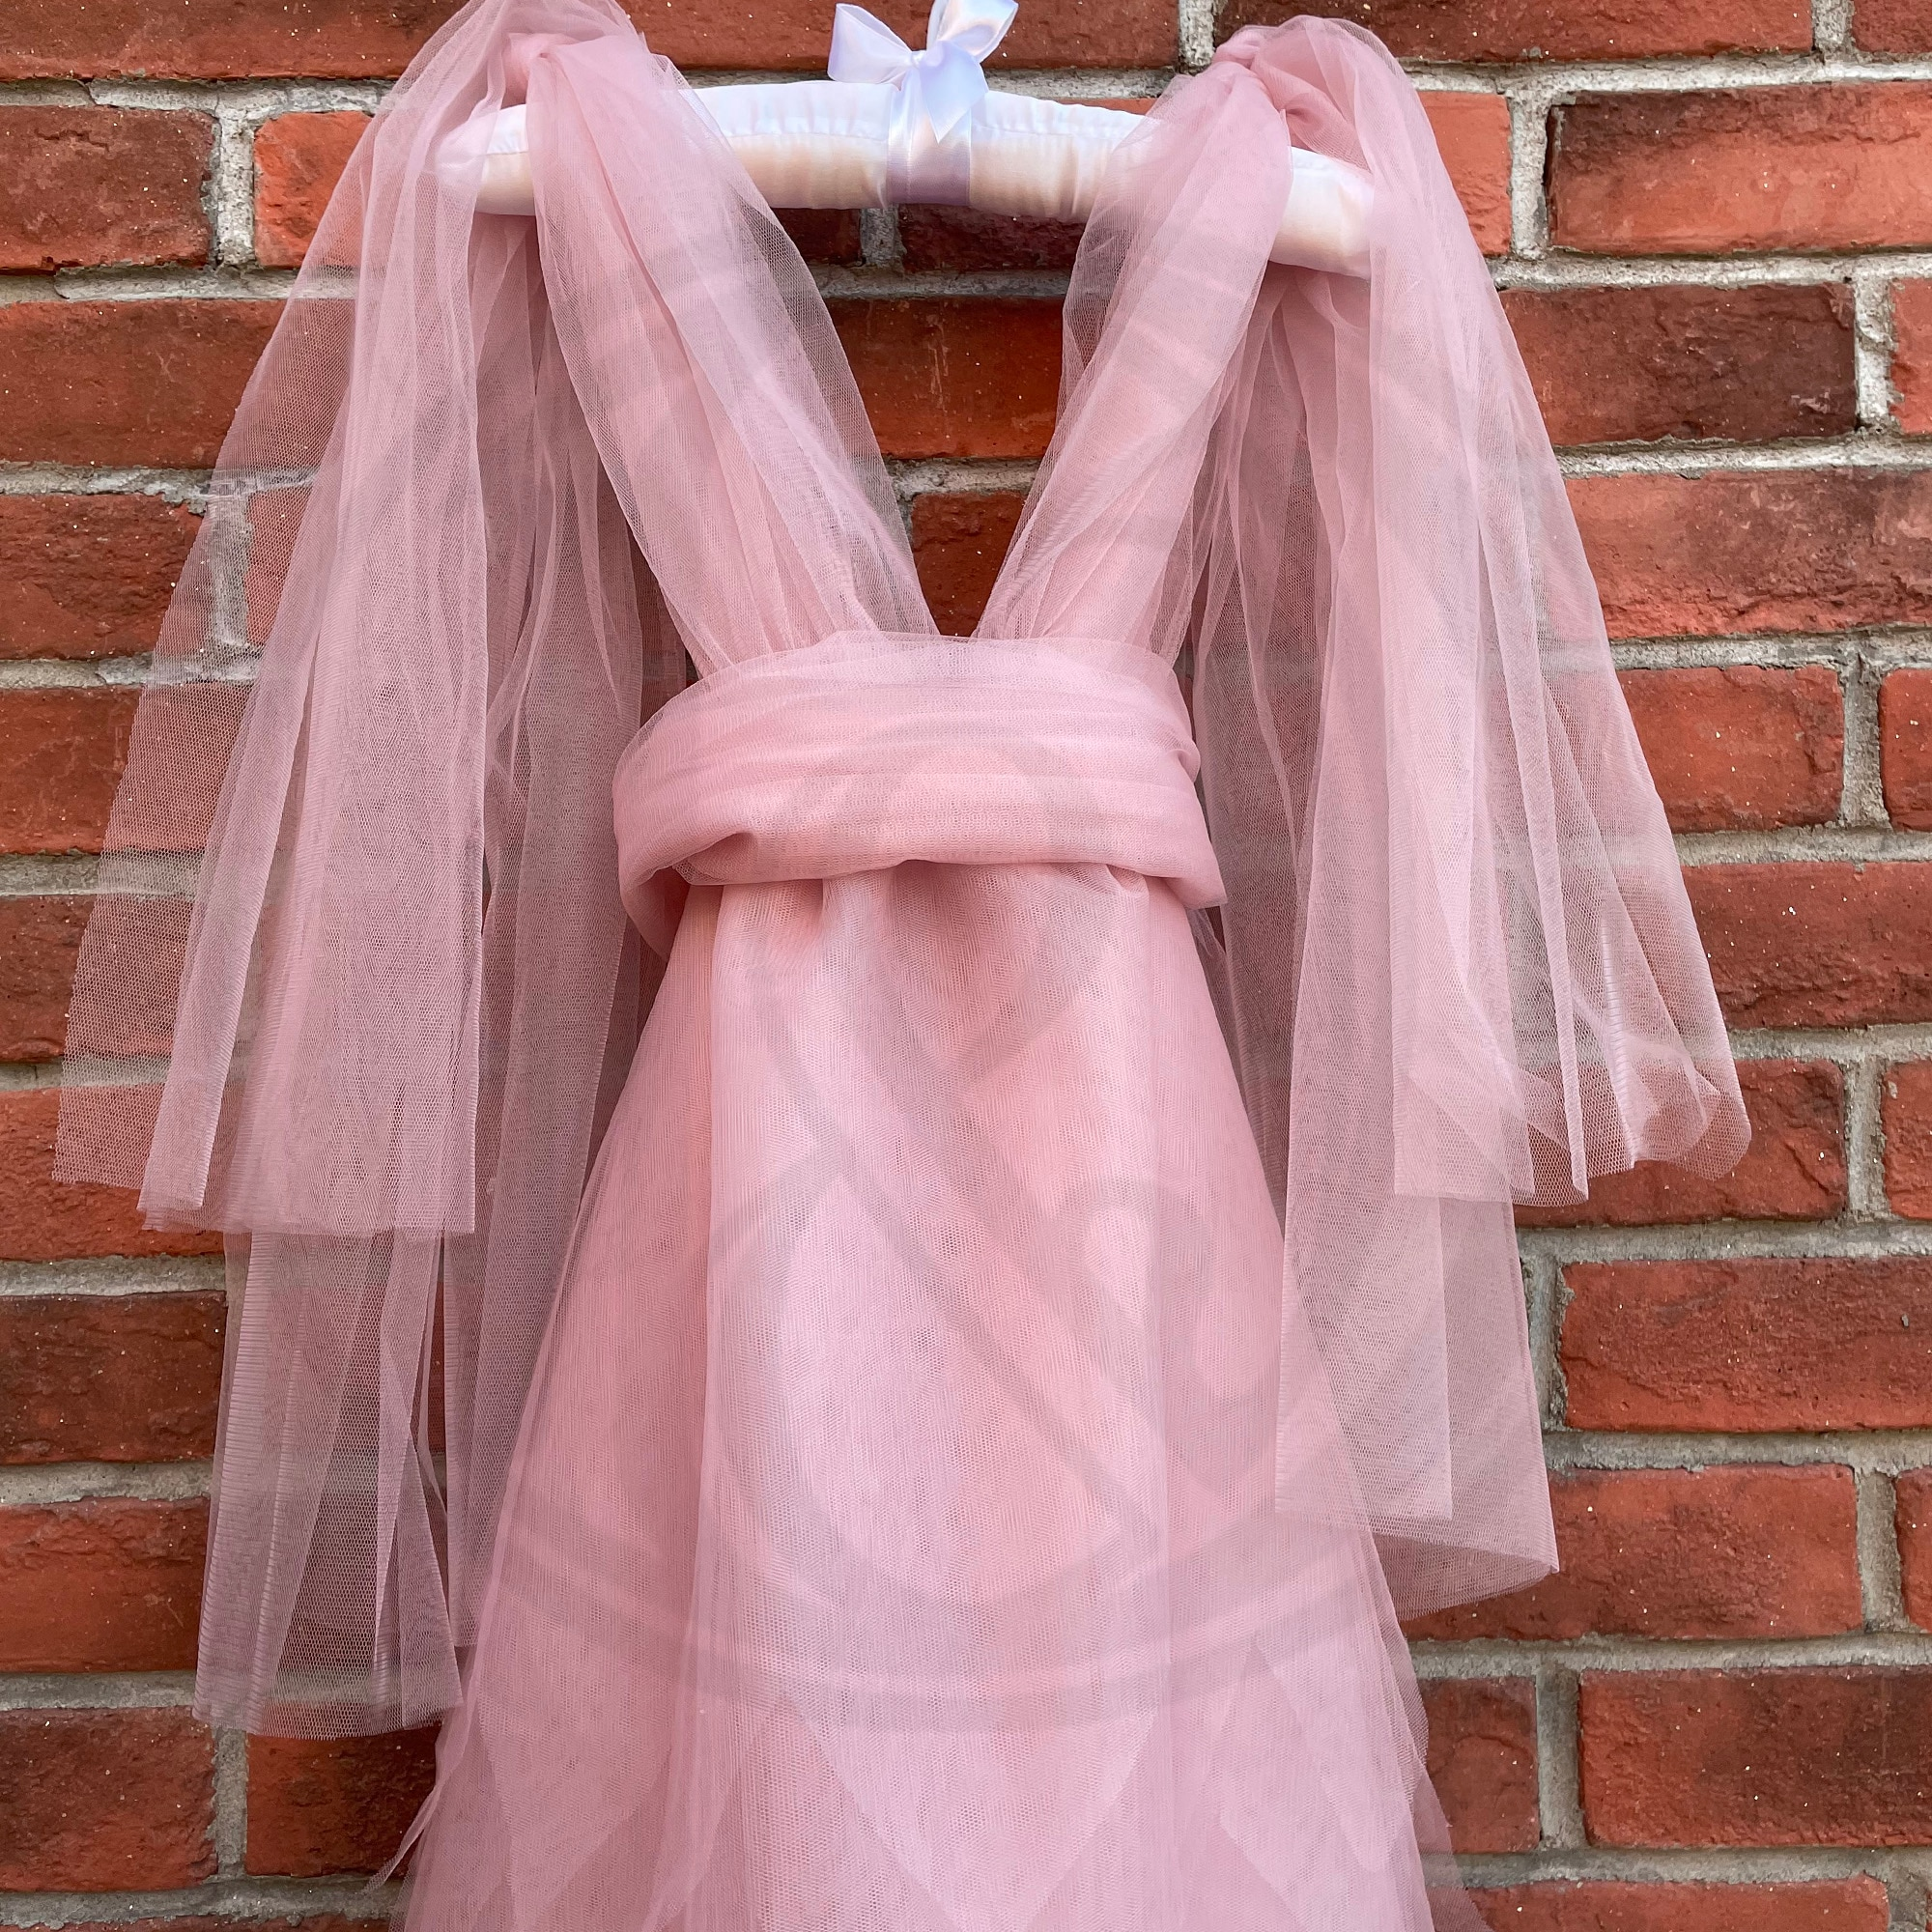 Summer Session Little Girl Princess Tulle Dress Photo Shoot Evening Party Gown Maxi Long Kid Robe for Photography Accessories enlarge